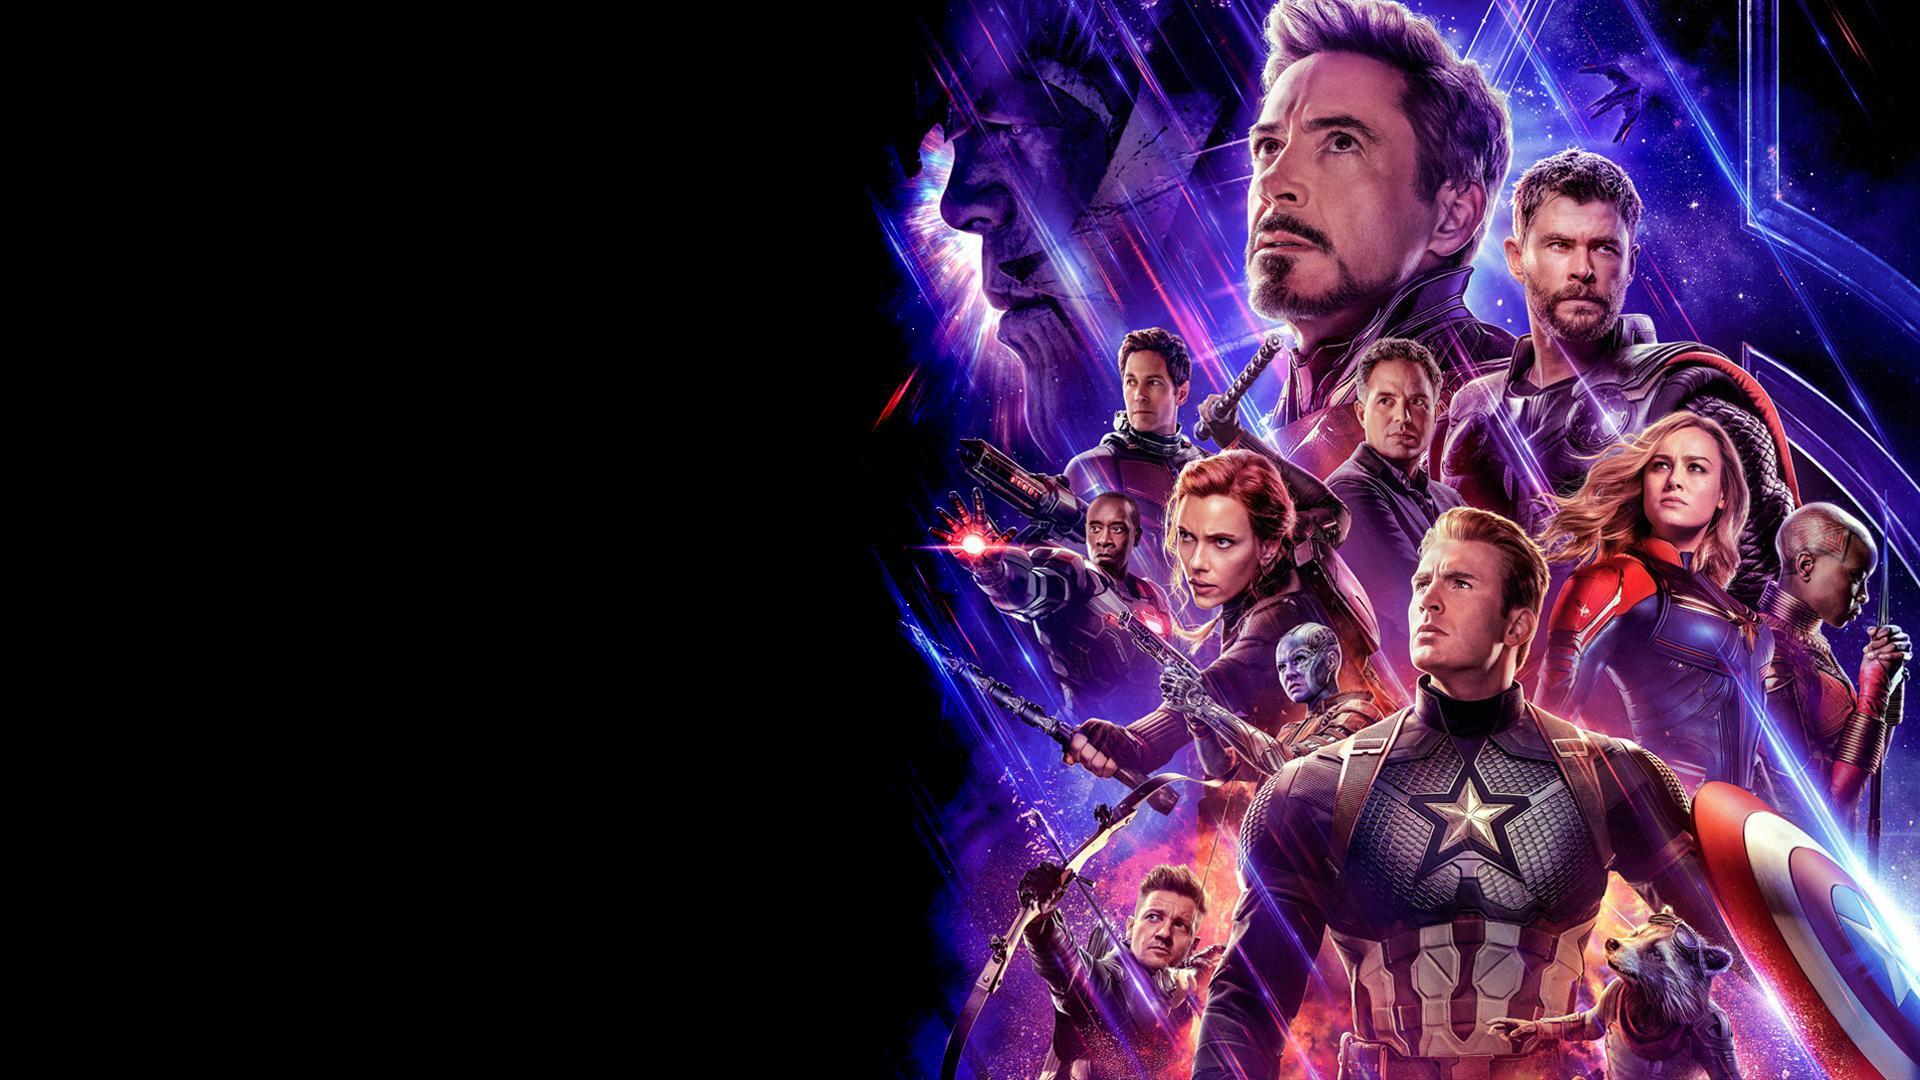 1920x1080 2019 Avengers Endgame Laptop Full Hd 1080p Hd 4k Wallpapers Images Backgrounds Photos And Pictures